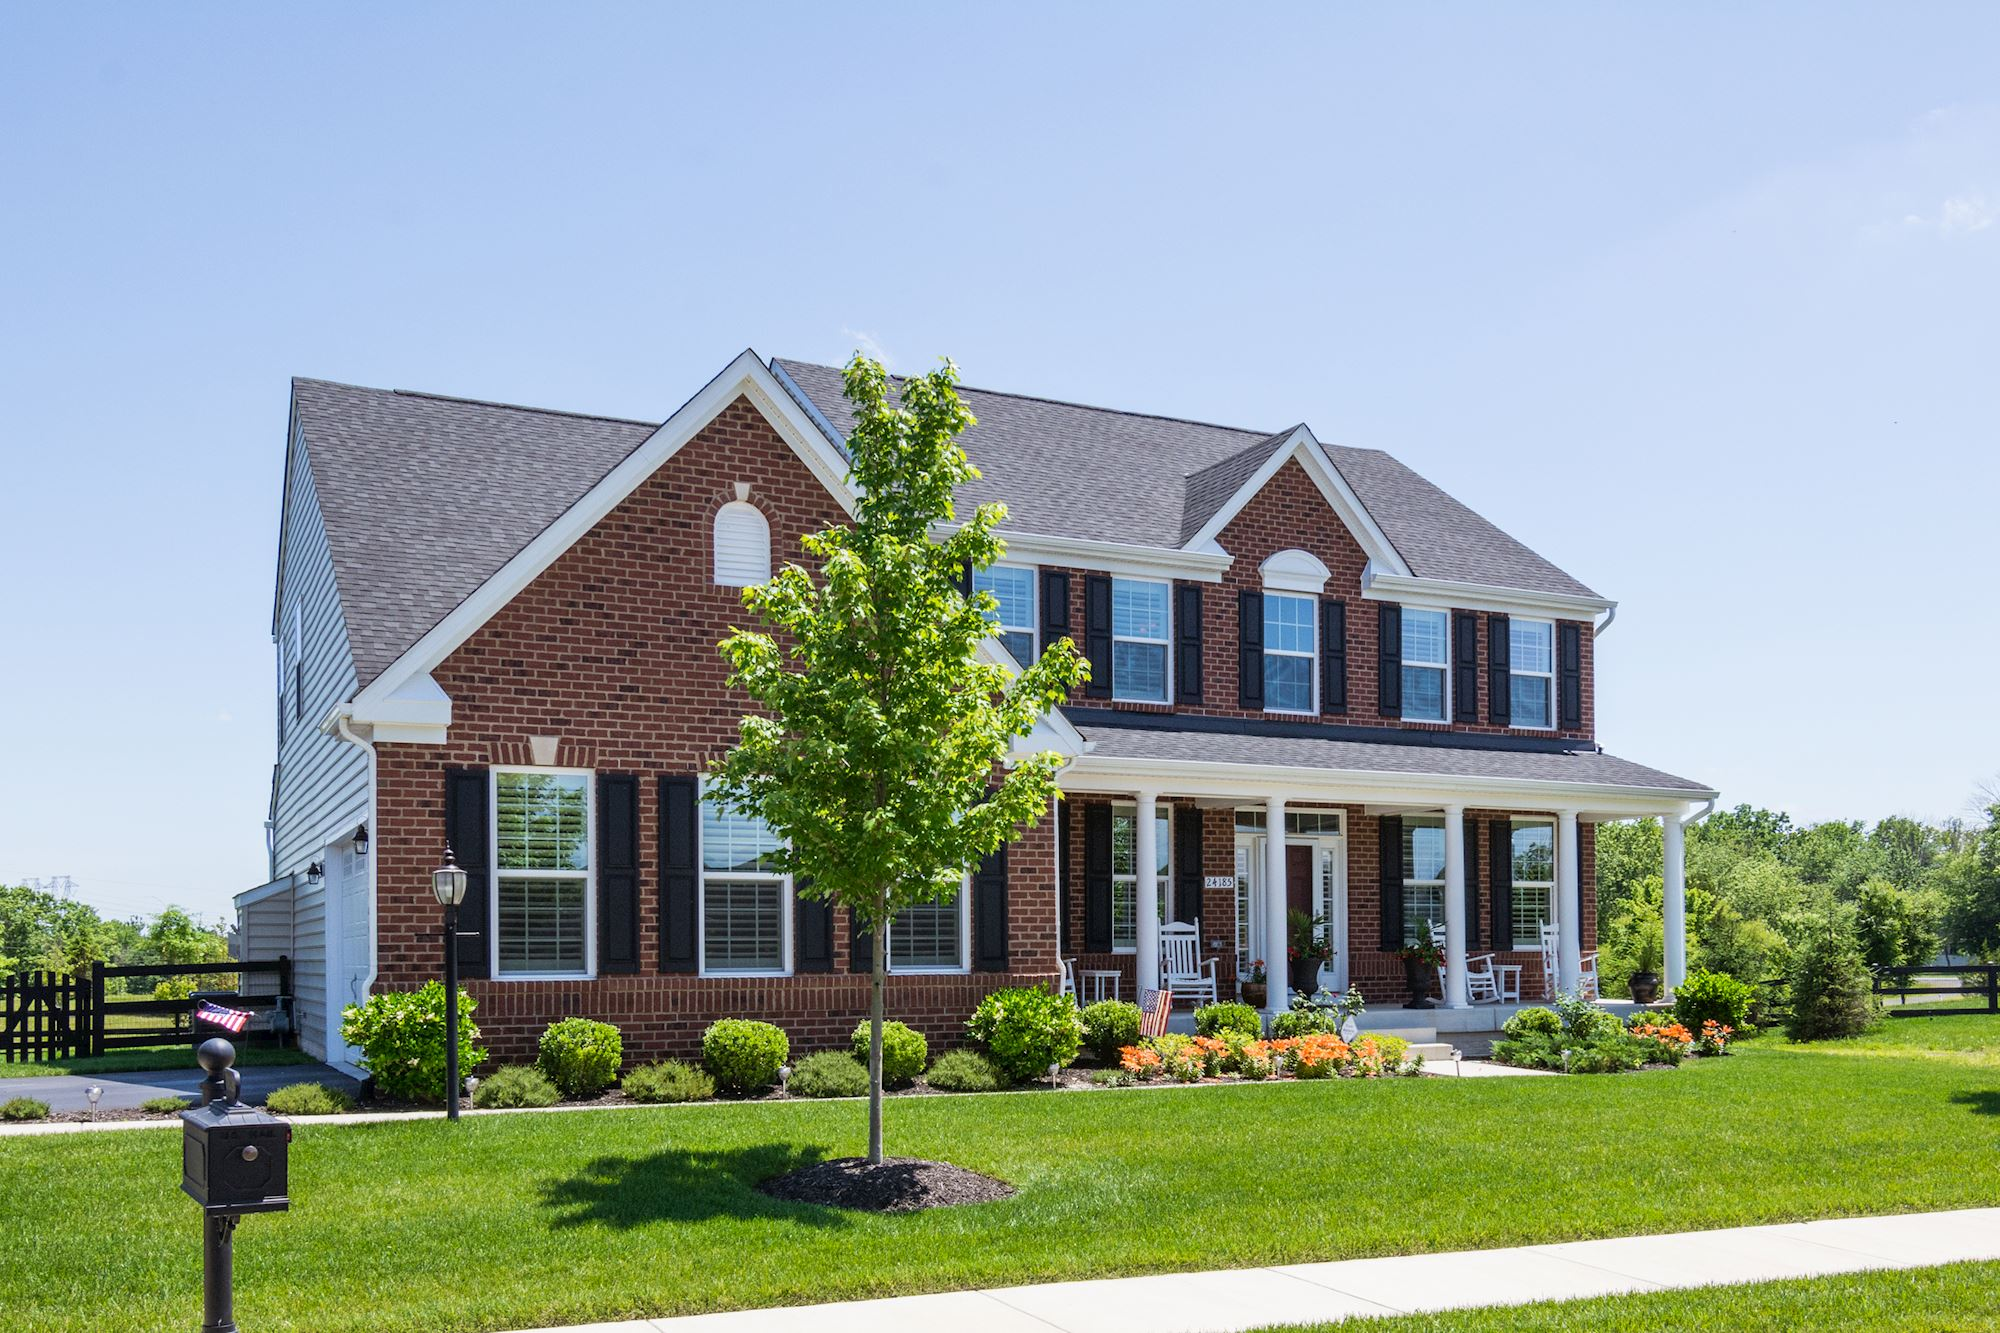 NEW LISTING: Picture Perfect 5 BD Ashburn Home With Large Yard